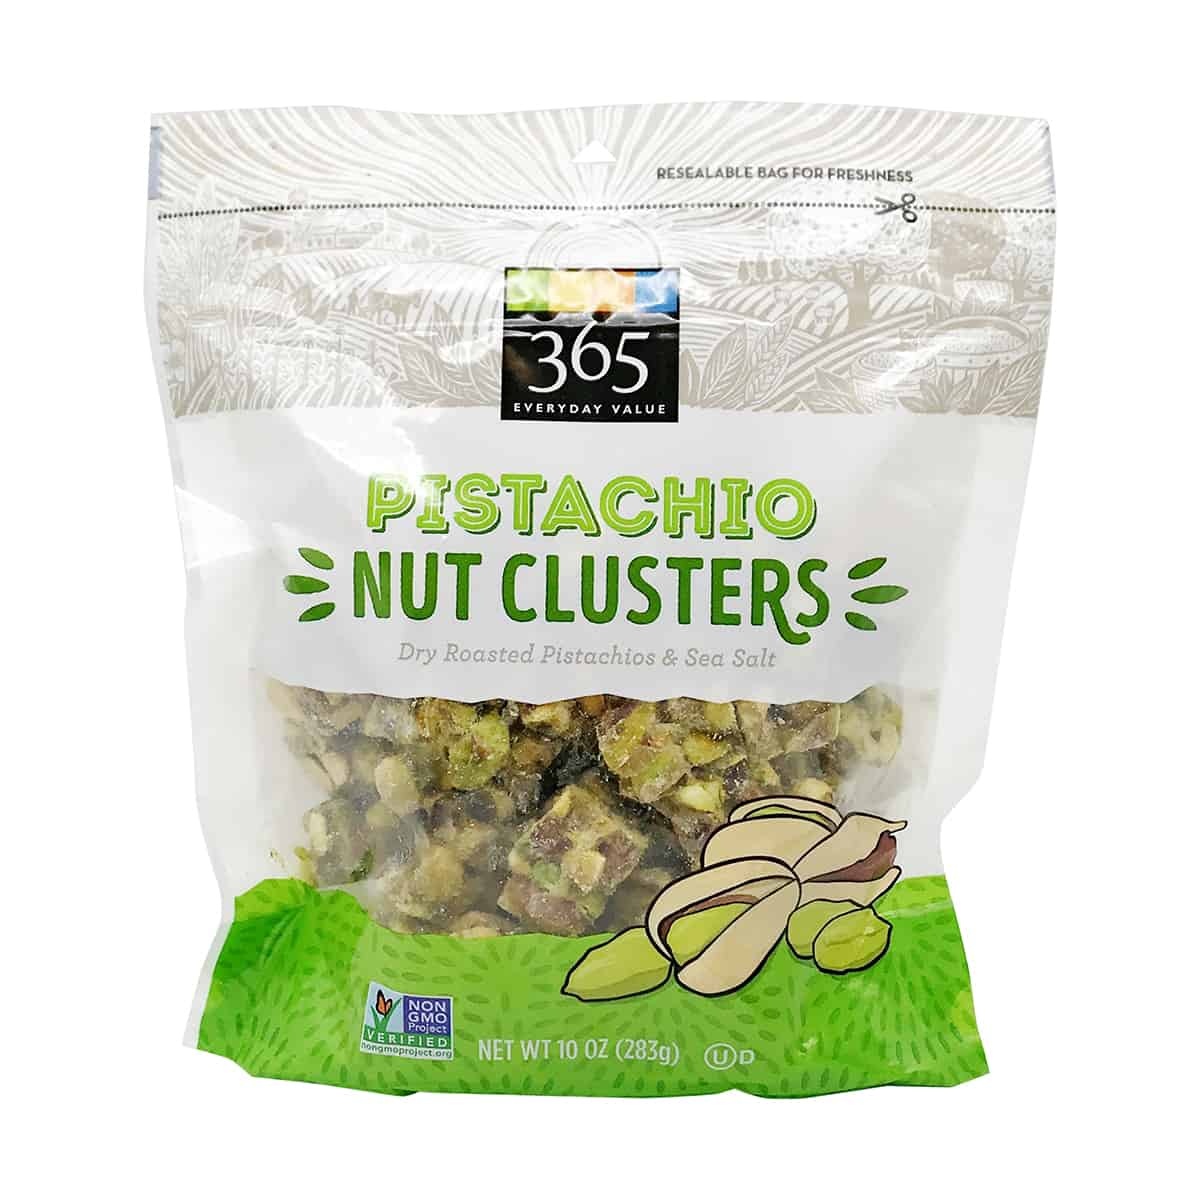 A package of pistachio nut clusters as an example of a healthy packaged snacks.